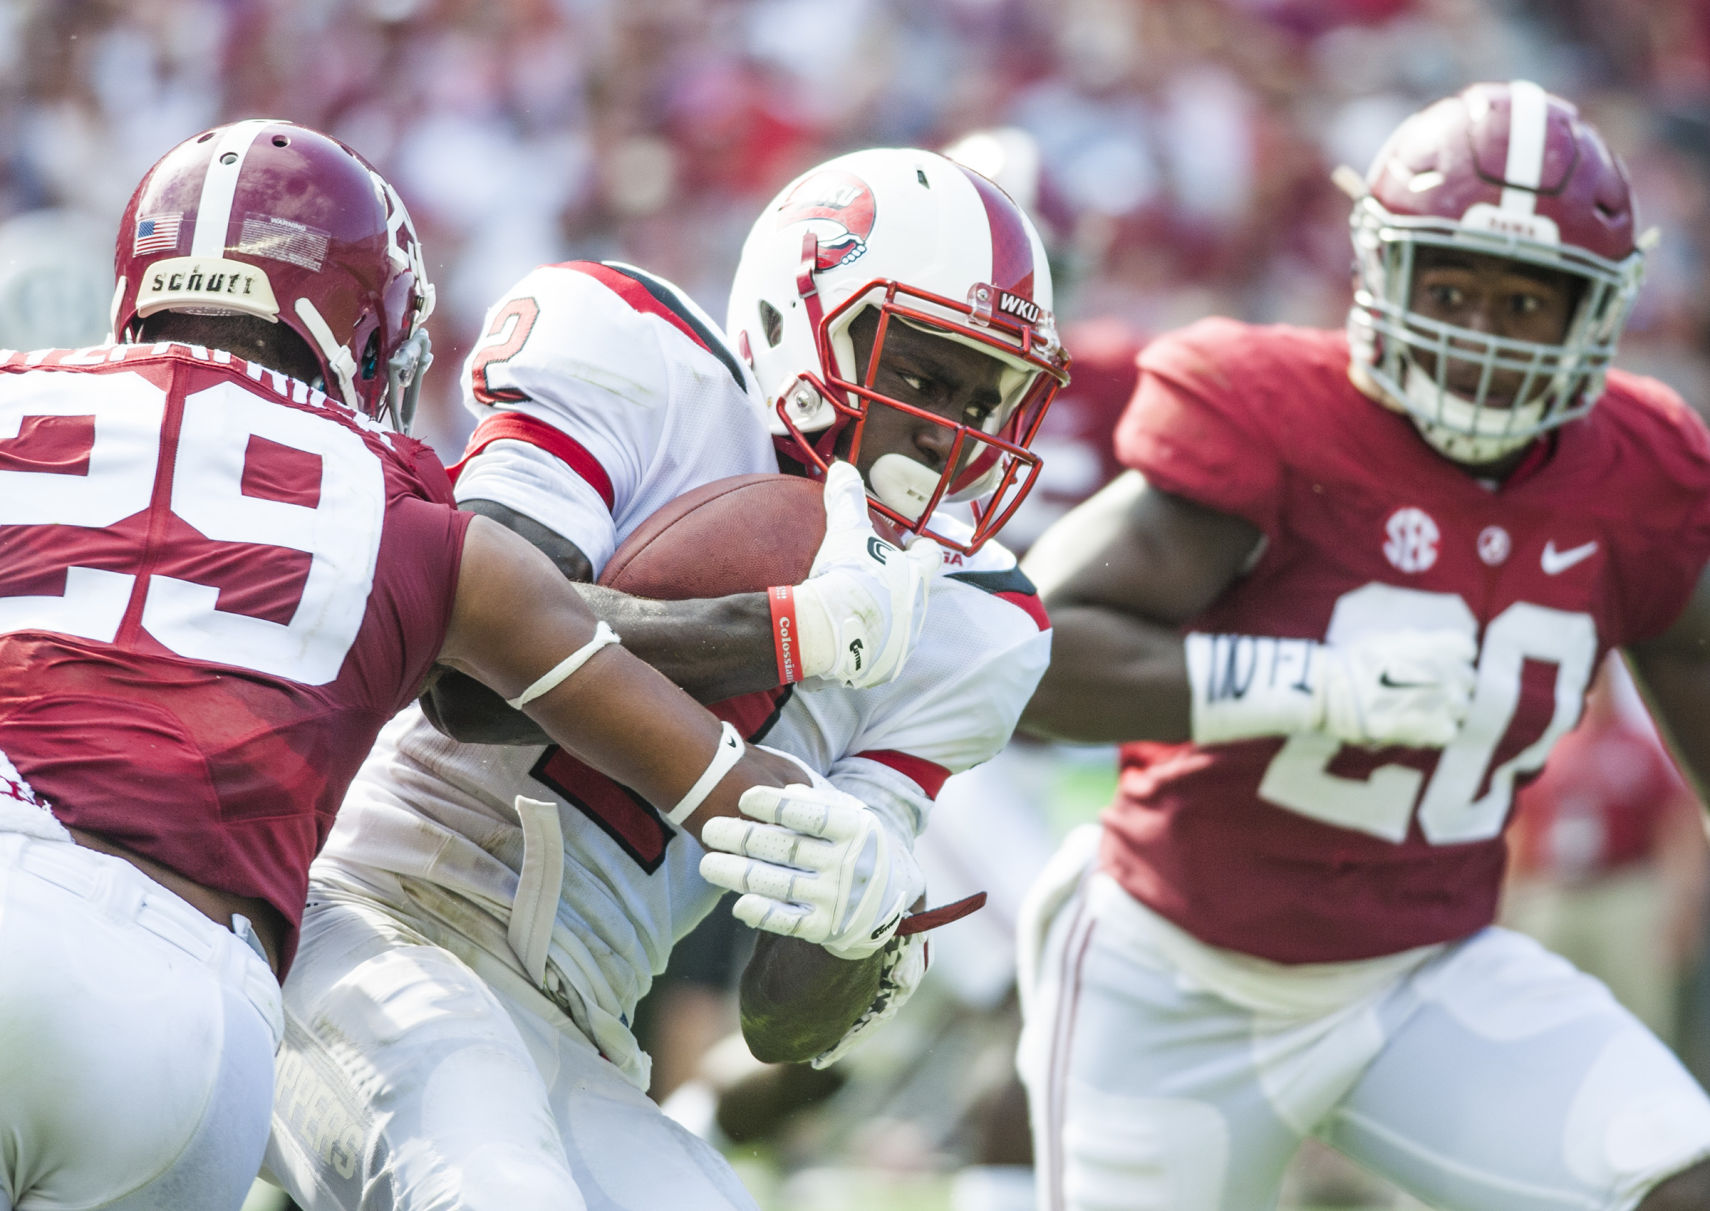 Woe is Alabama: Top-ranked Tide unhappy with performance